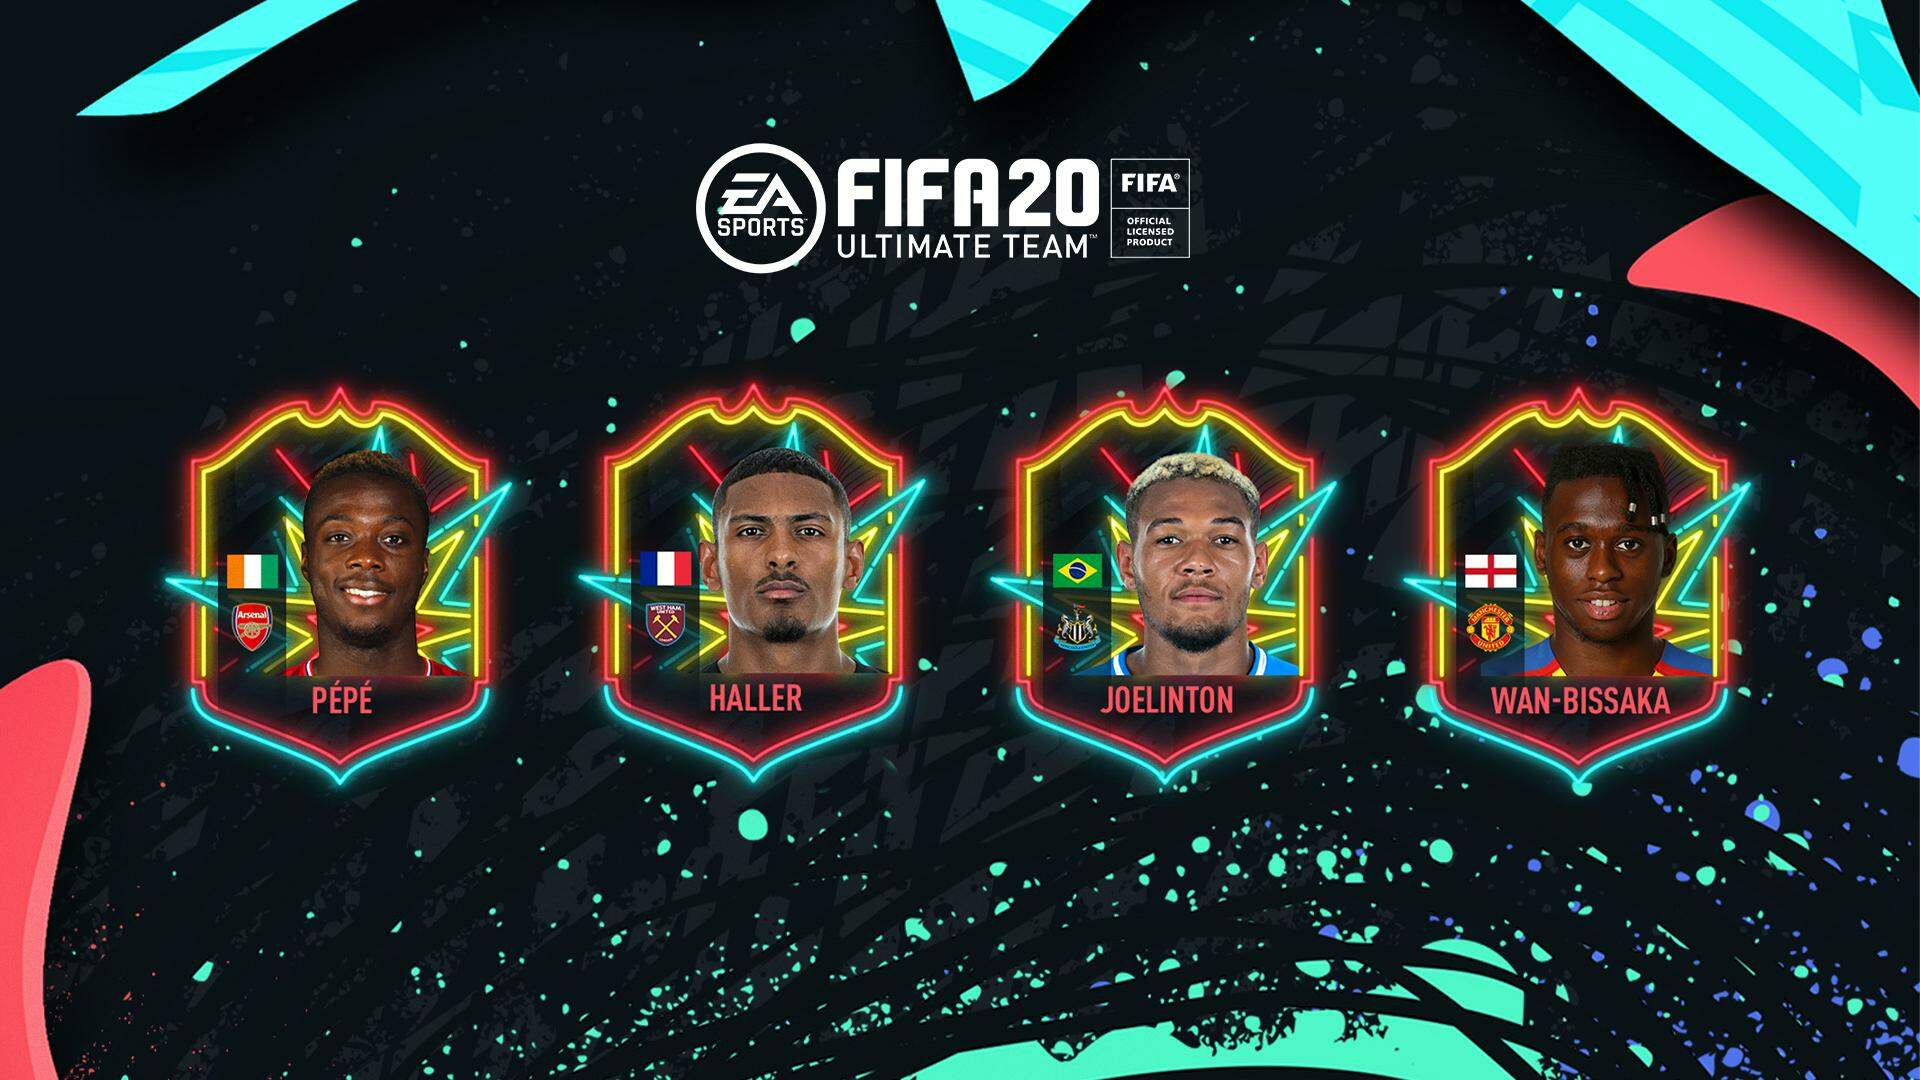 FIFA 20 OTW Cards - Ones to Watch Players List Explained